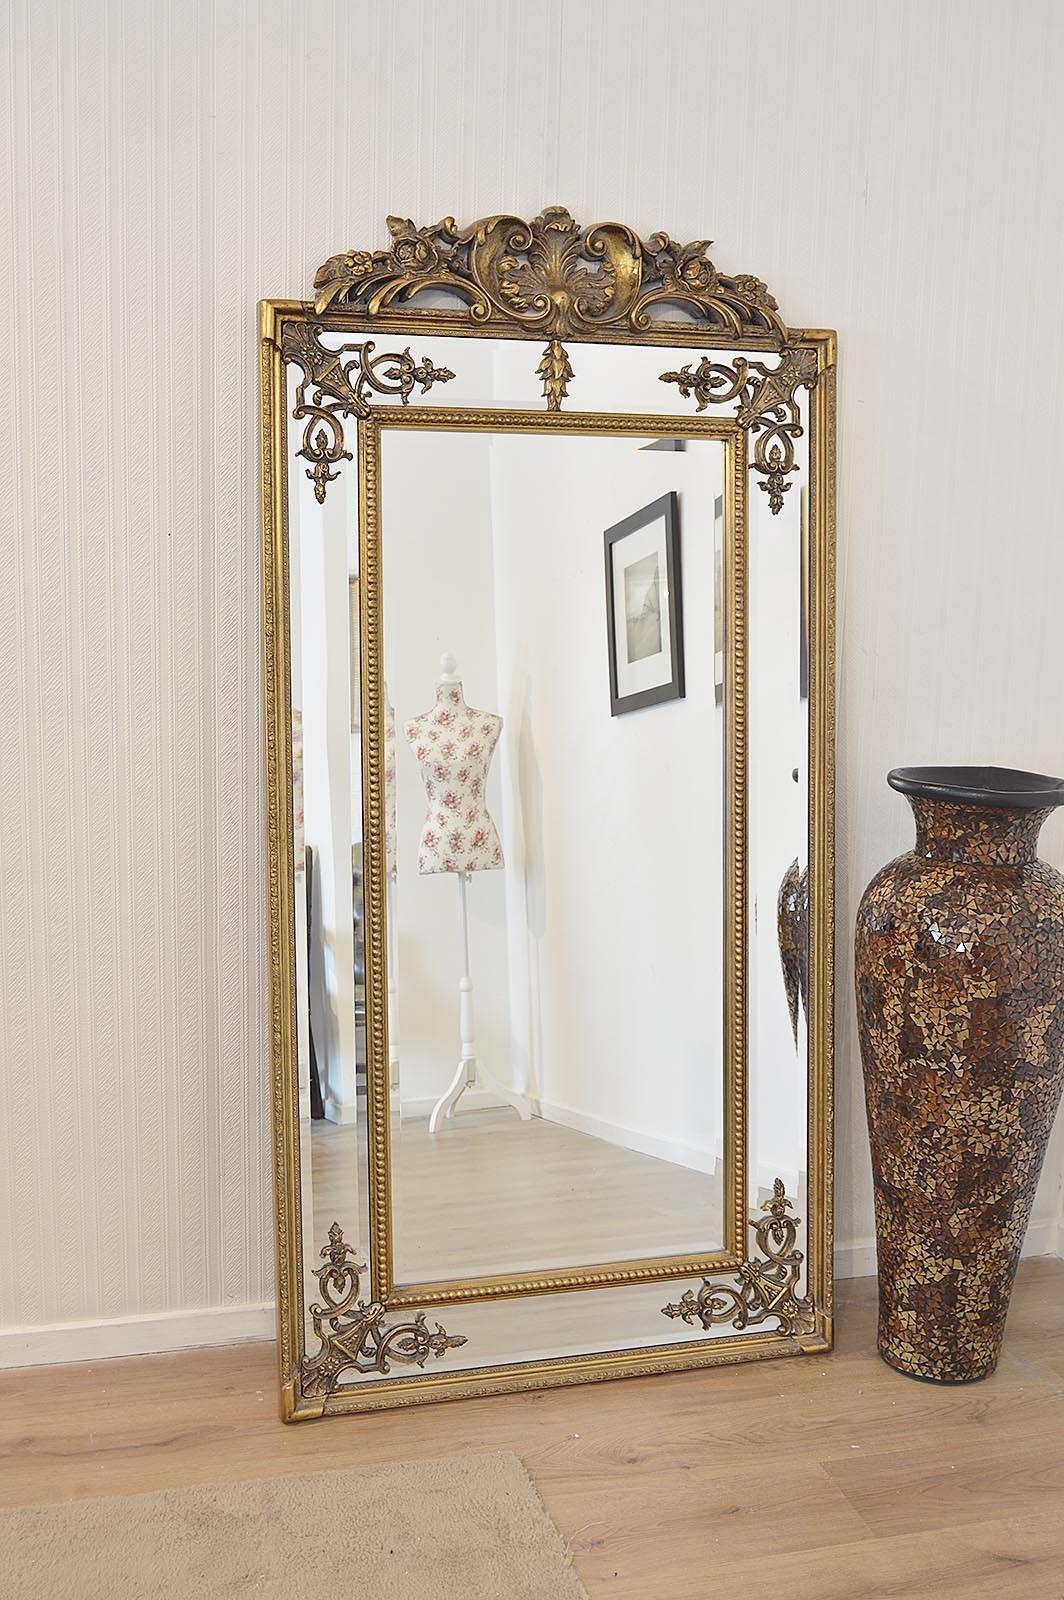 Ornate Mirrors For Sale 77 Inspiring Style For Hollywood Regency Throughout Ornate Mirrors For Sale (Image 16 of 20)